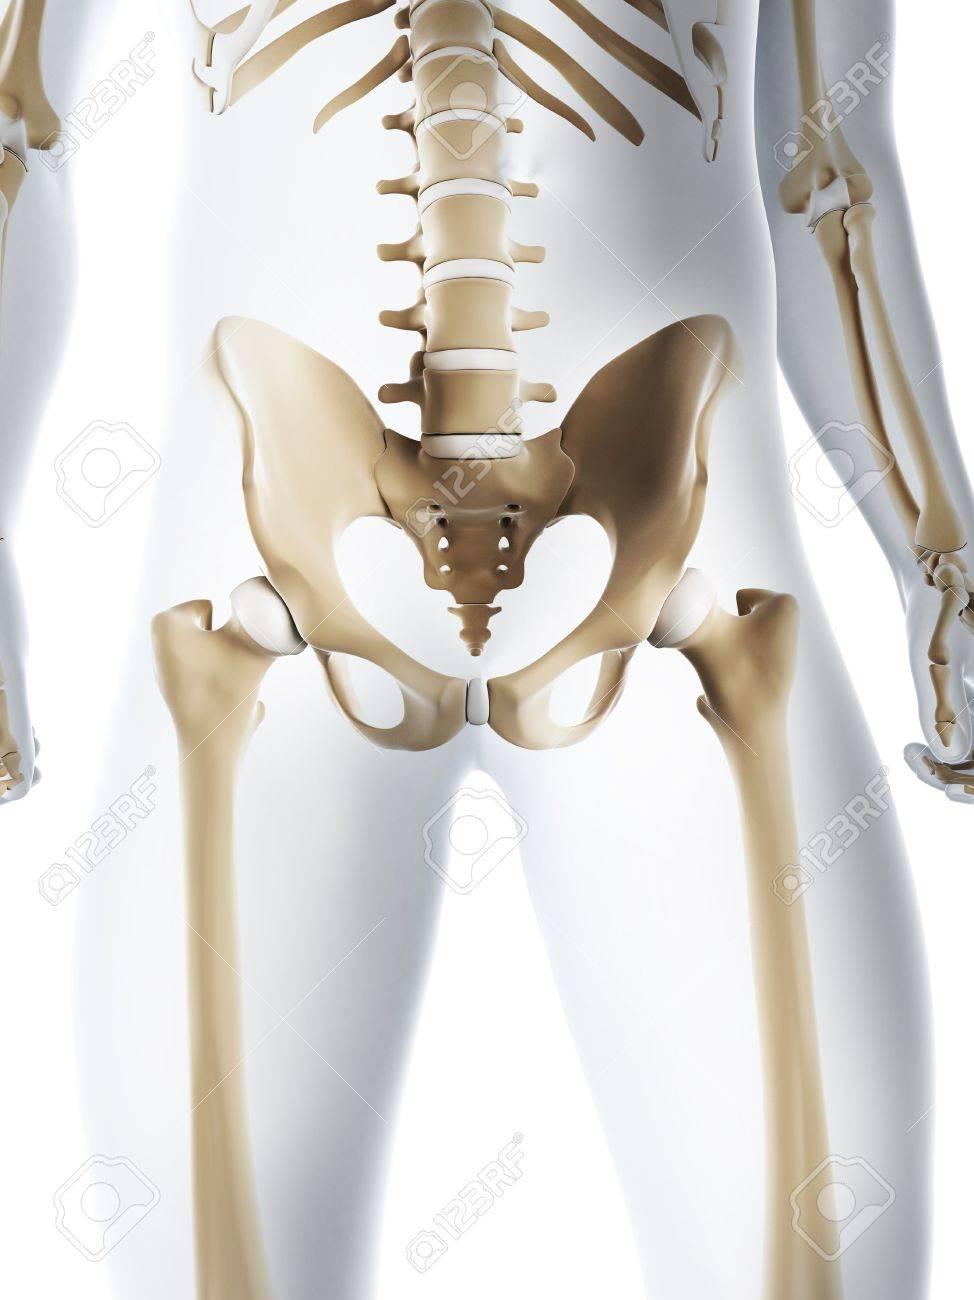 Male Pelvis Bonescomputer Artwork Stock Photo Picture And Royalty